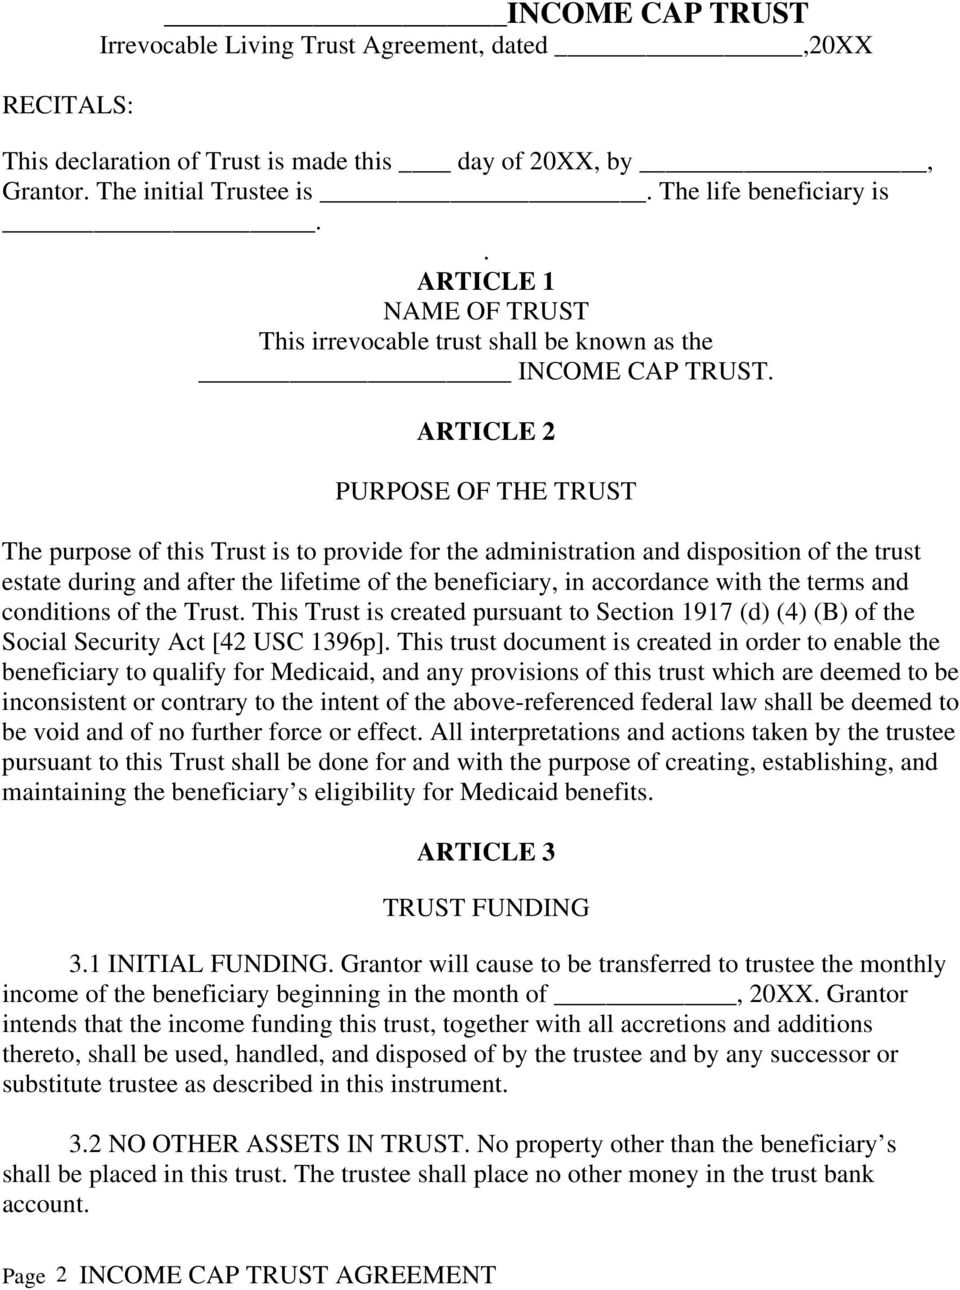 Irrevocable Living Trust Agreement Beneficiary Living Trust